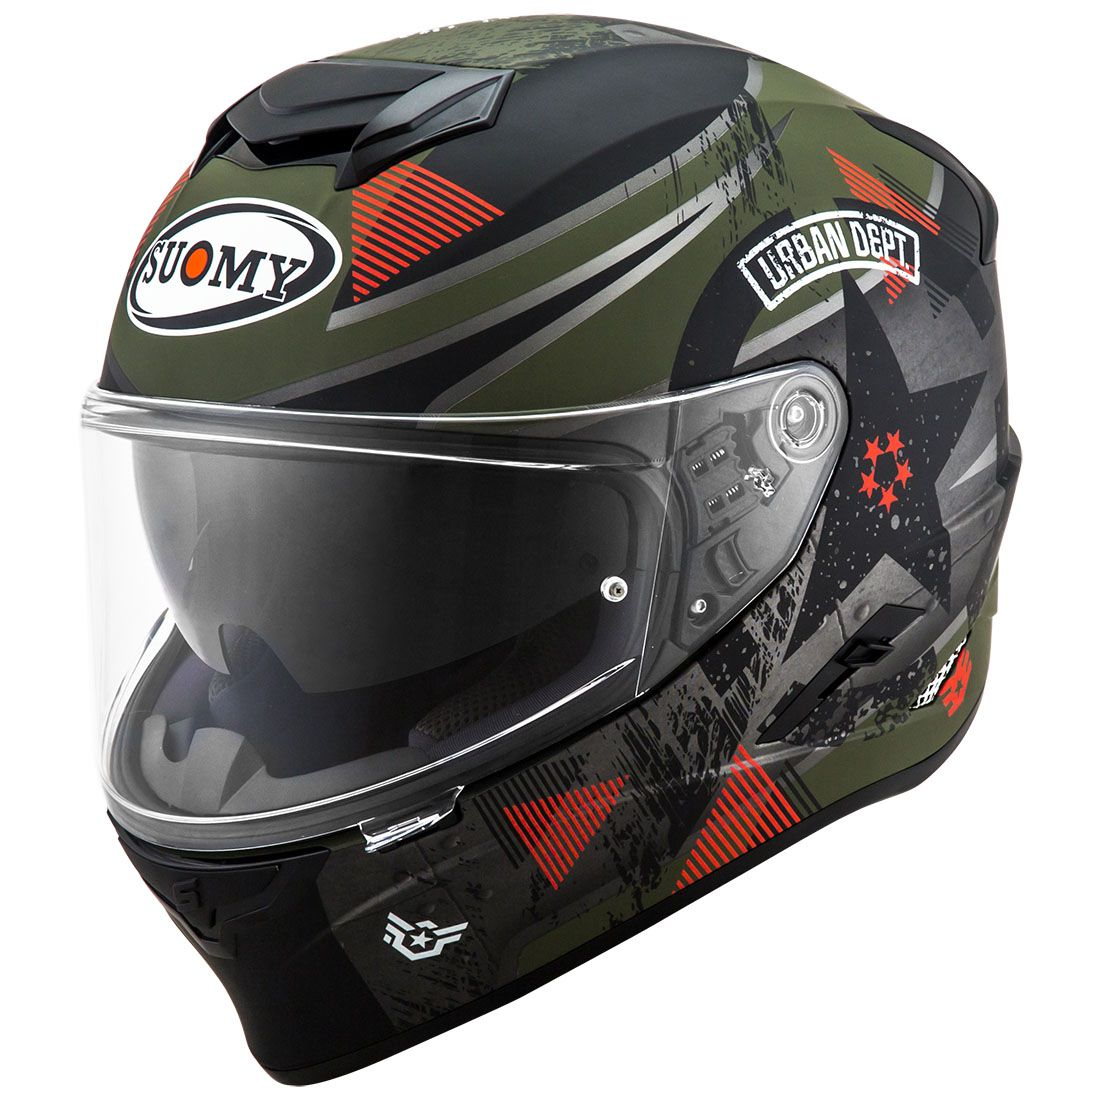 Capacete Suomy Stellar Wrench Matt Green/Grey